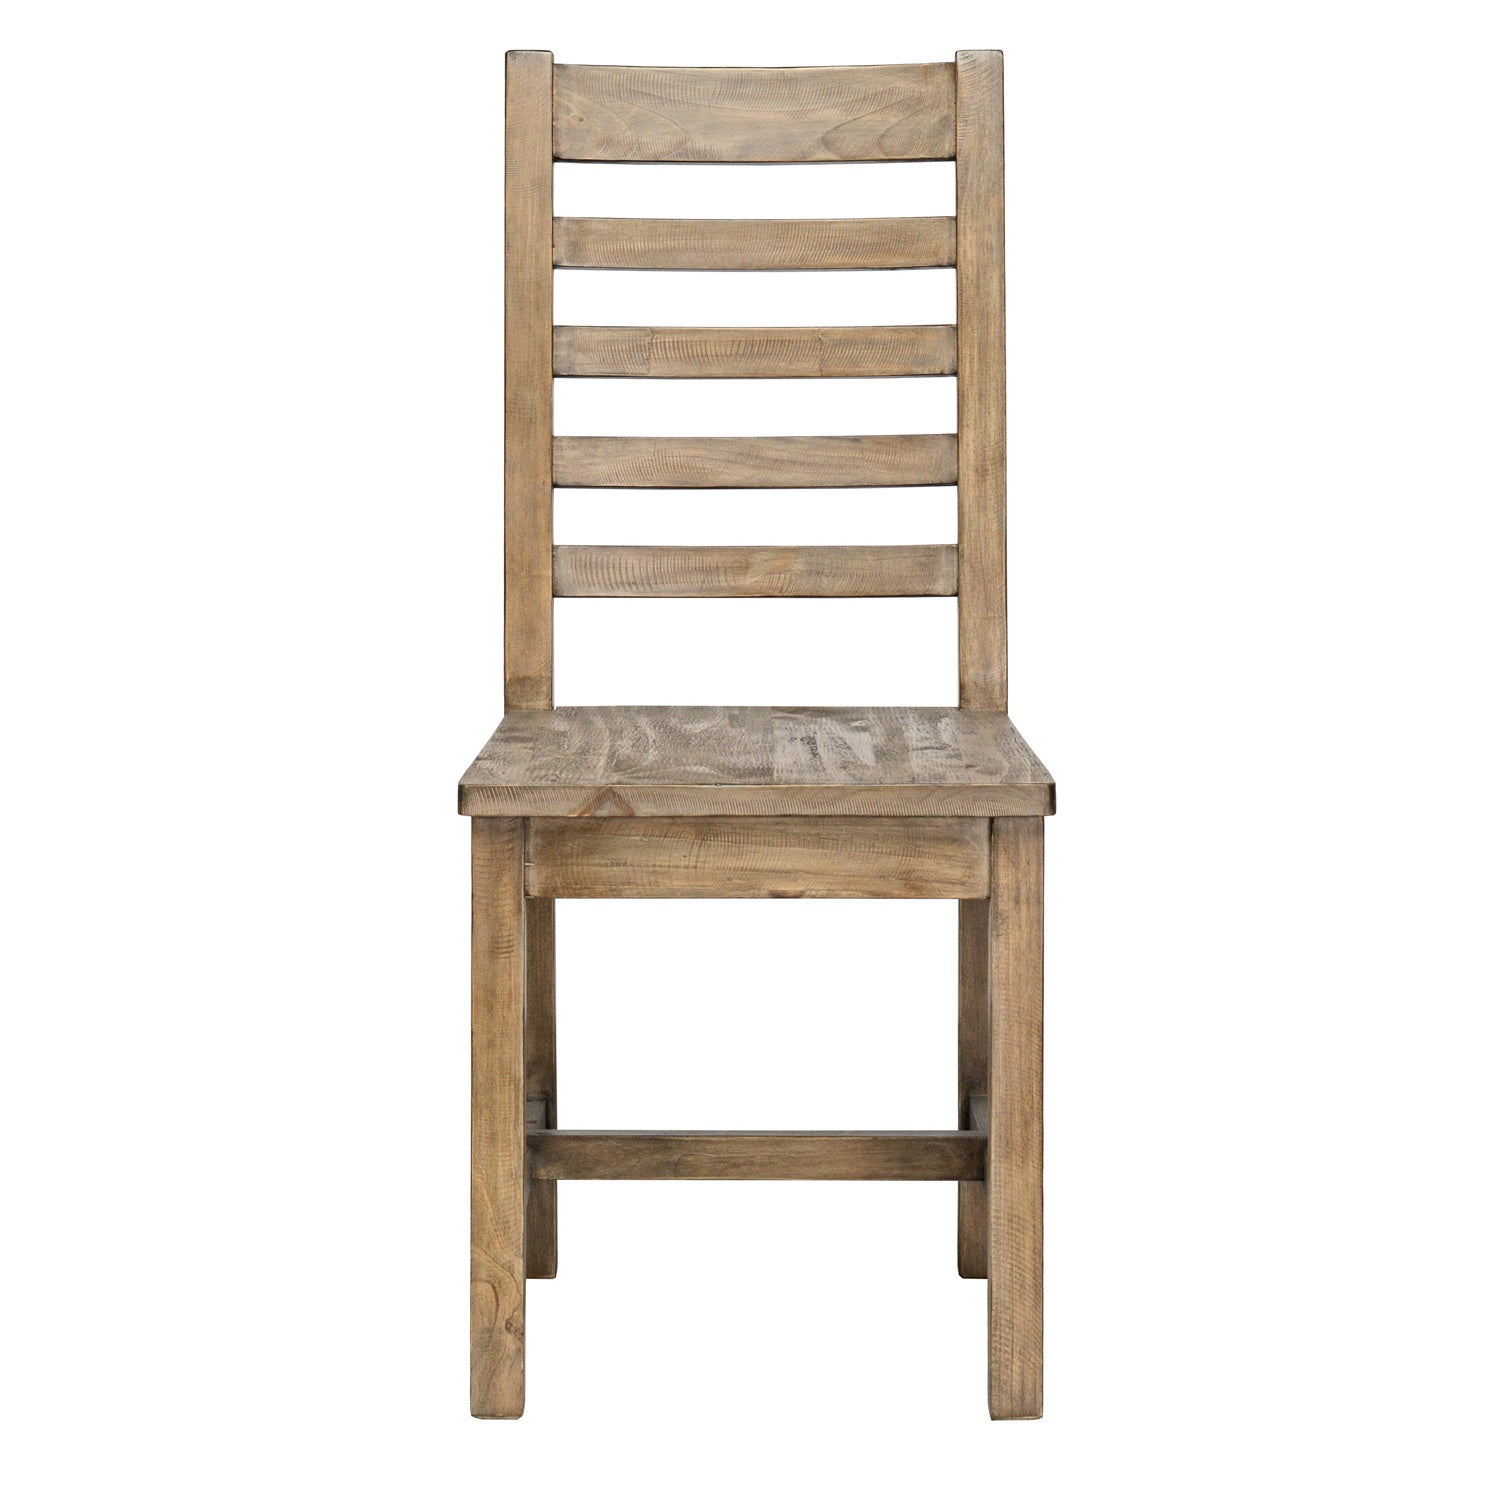 Shop Kasey Reclaimed Wood Dining Chair by Kosas Home - On Sale ...